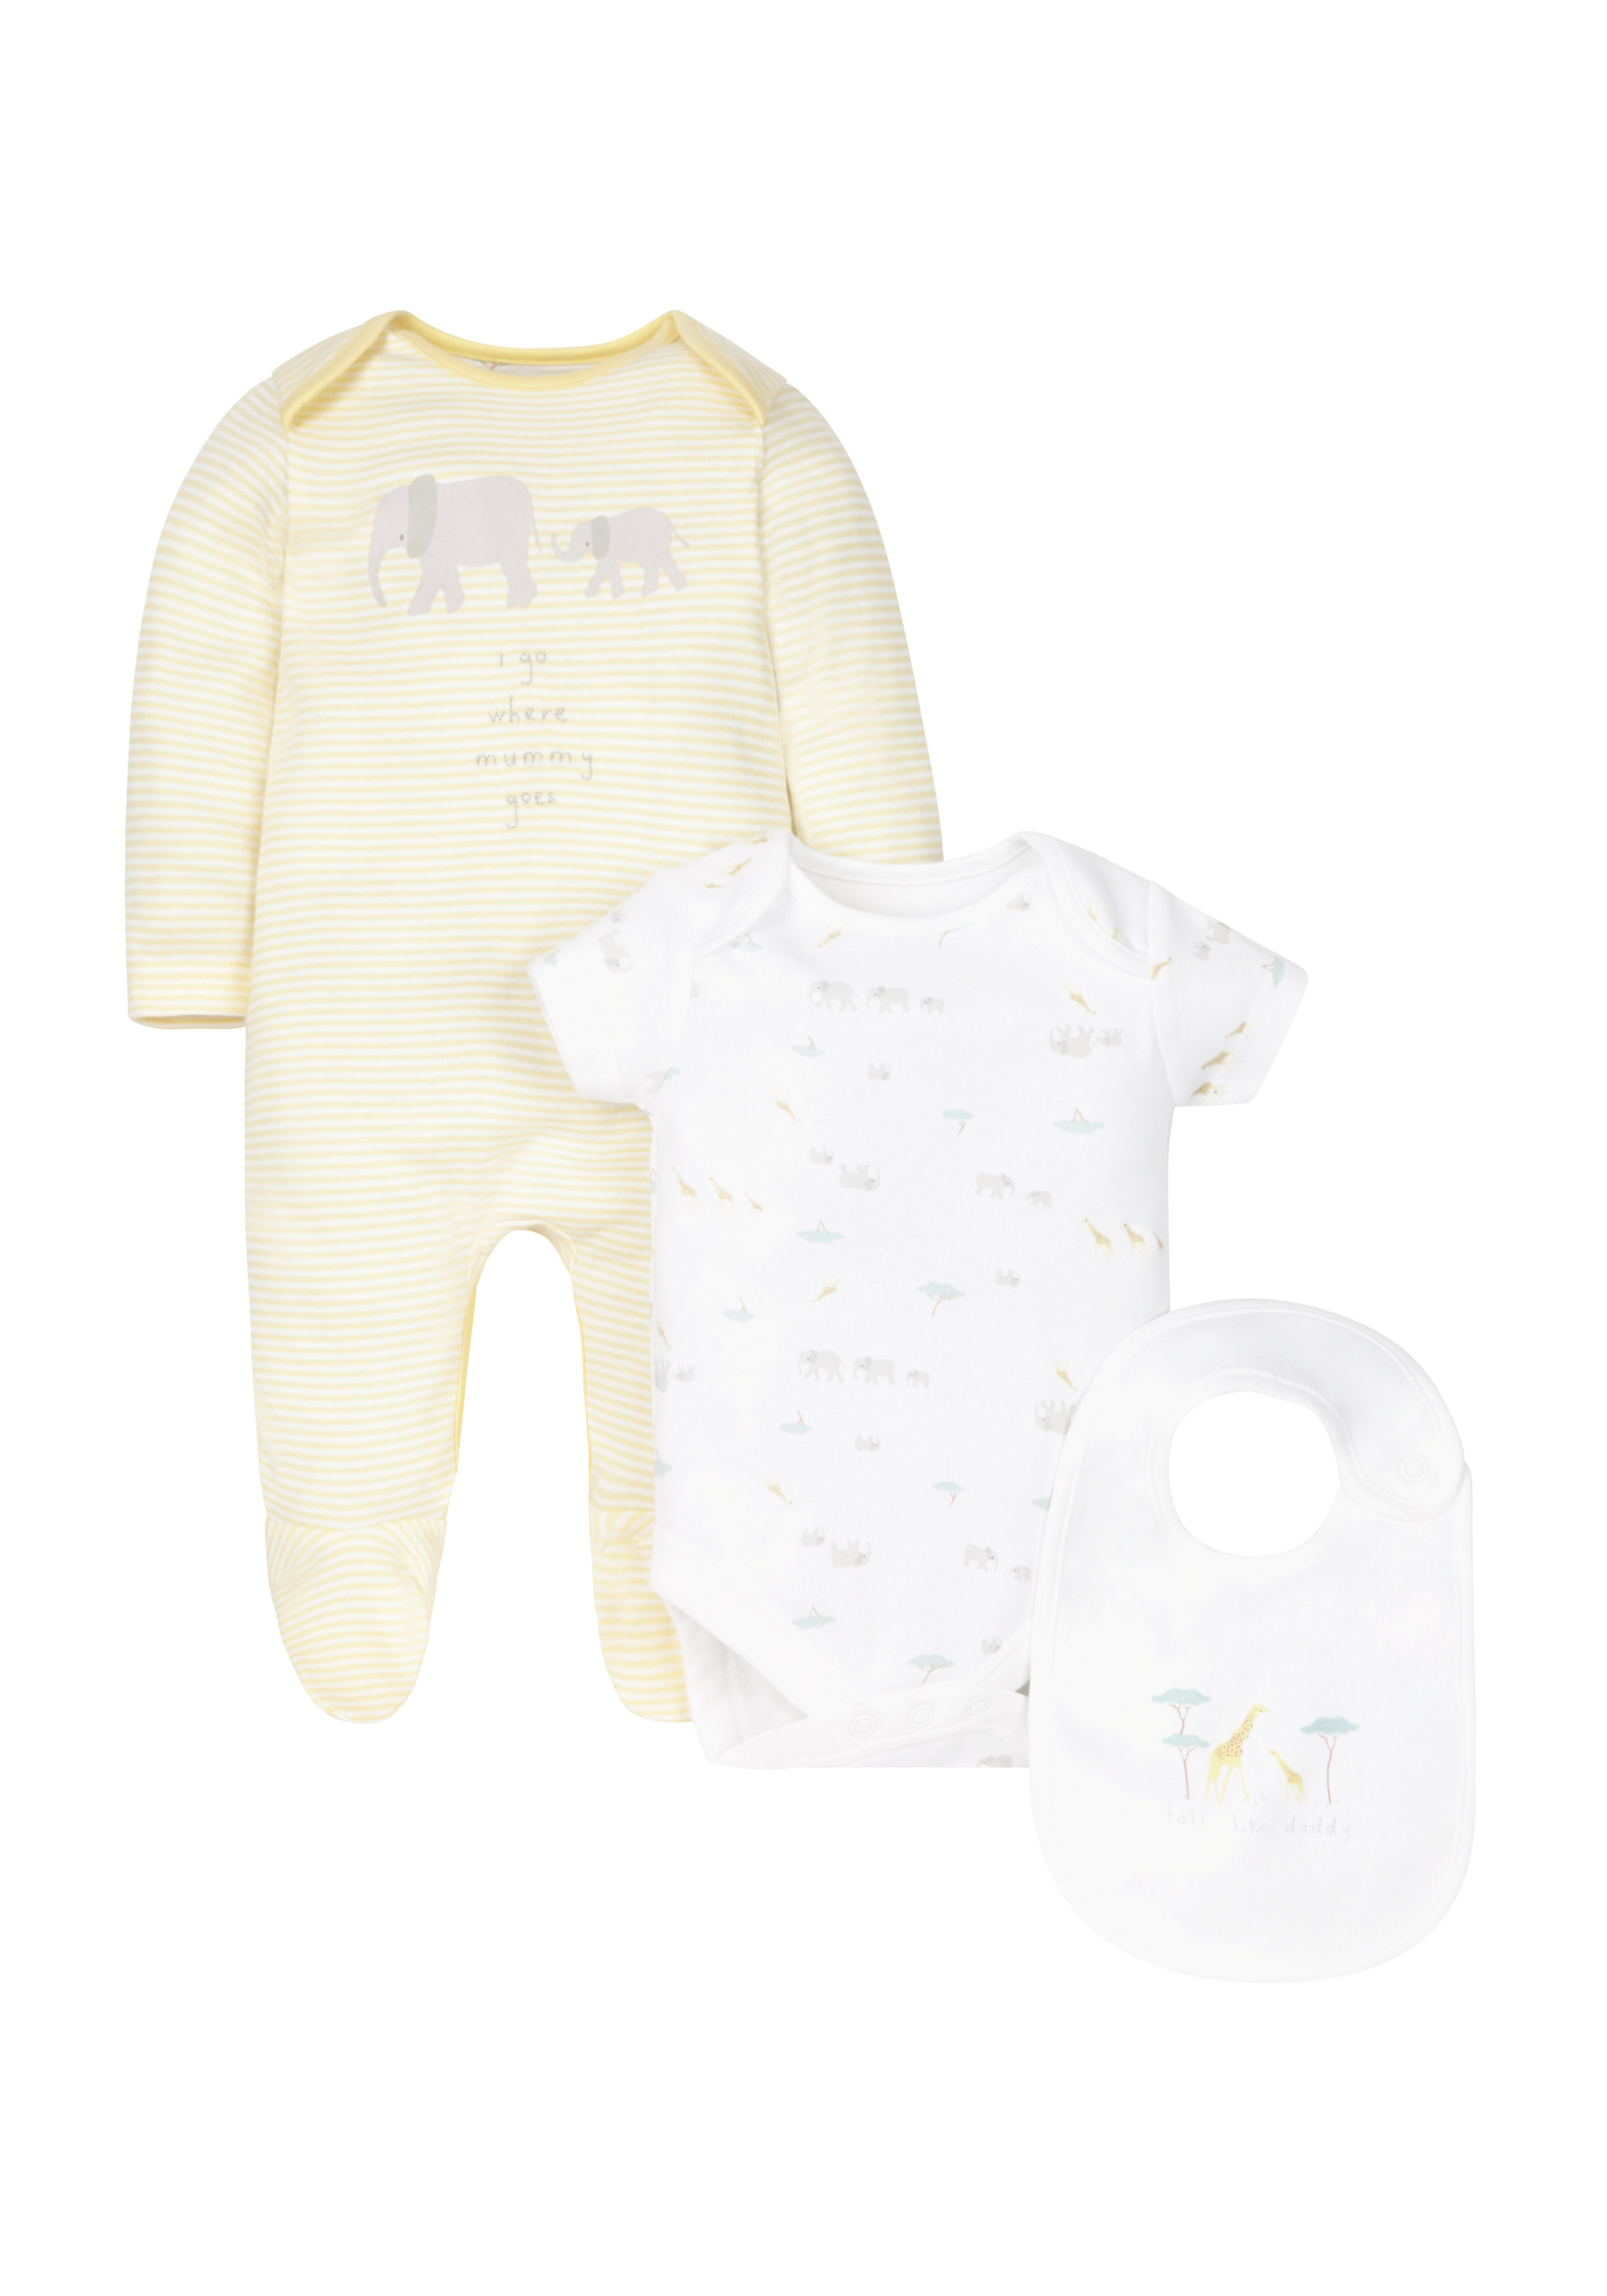 Mothercare | Unisex Mummy And Daddy Set - 3 Piece - White